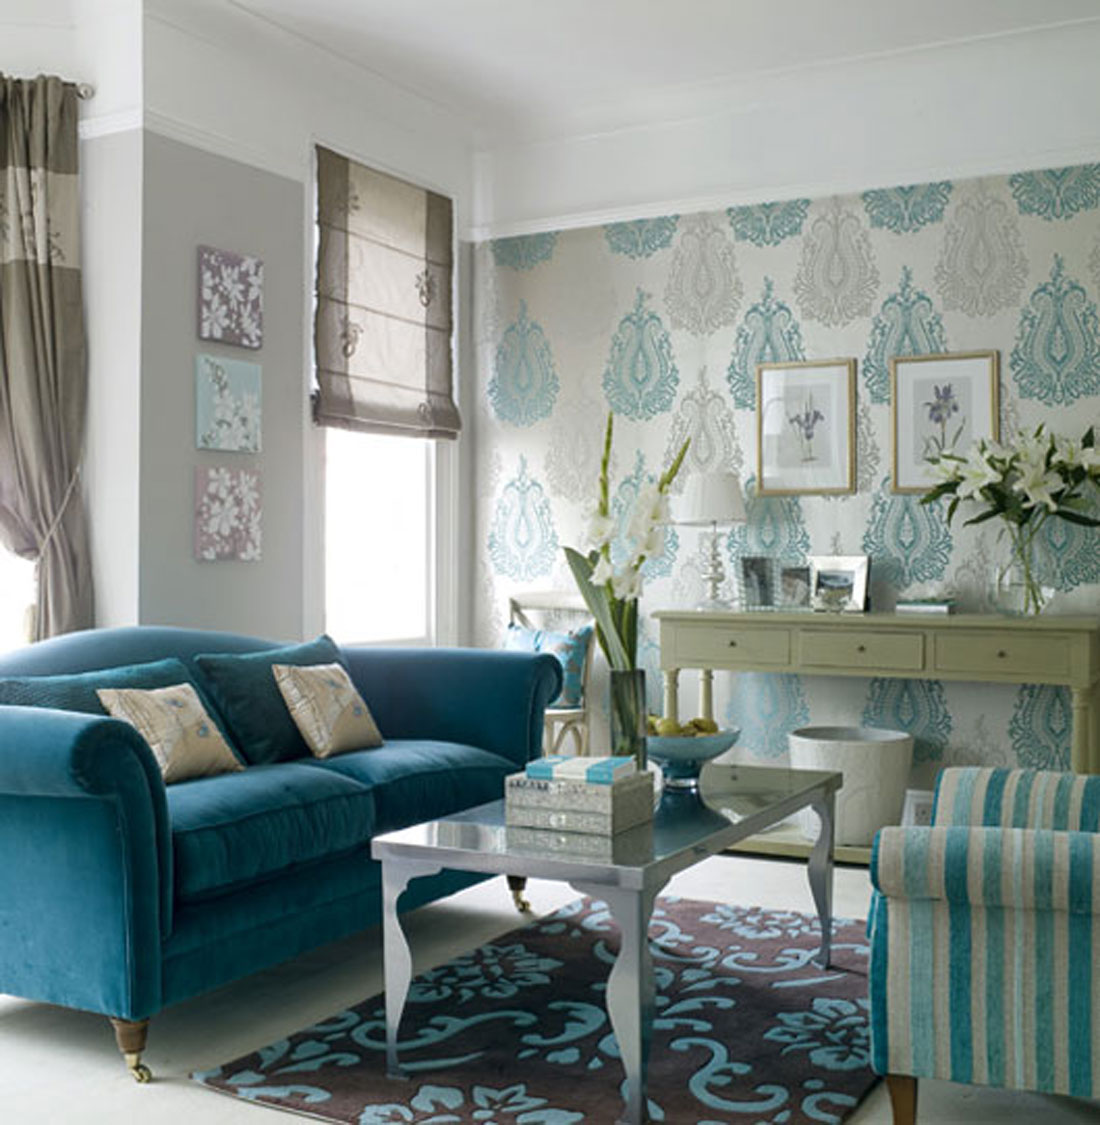 Living Room Interior Design: The Texture Of Teal And Turquoise